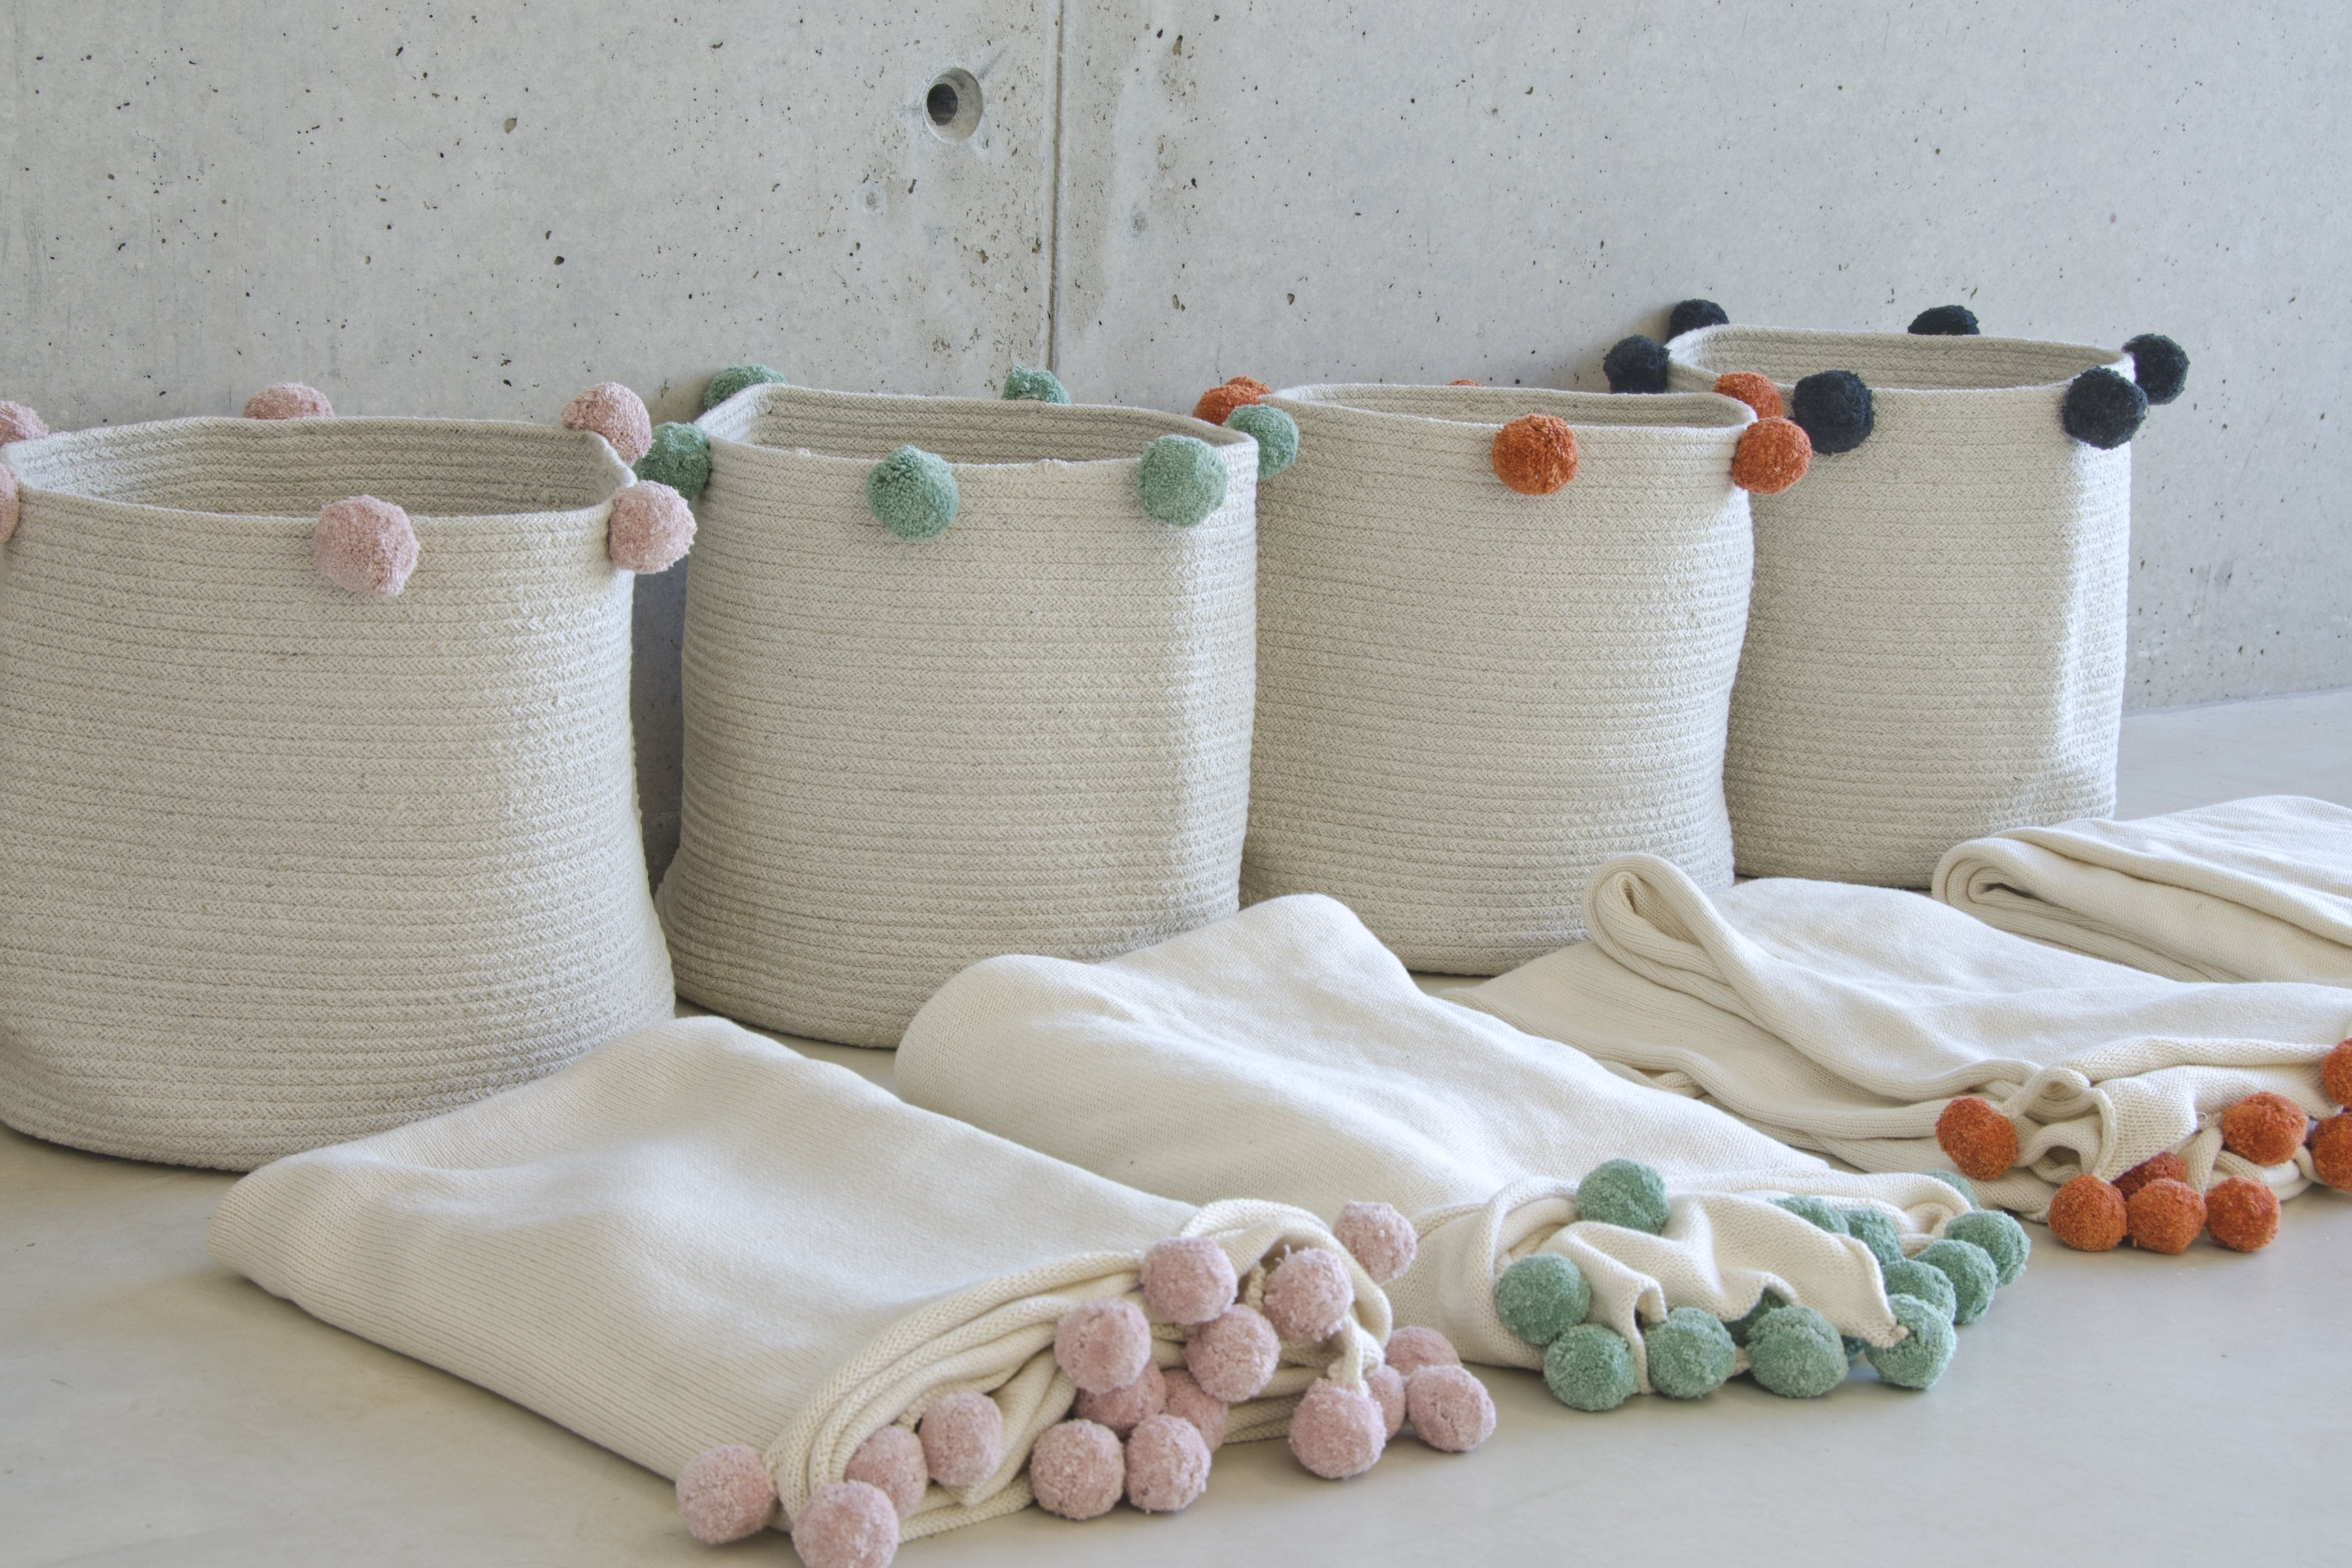 Bubbly Blanket in Natural & Nude design by Lorena Canals